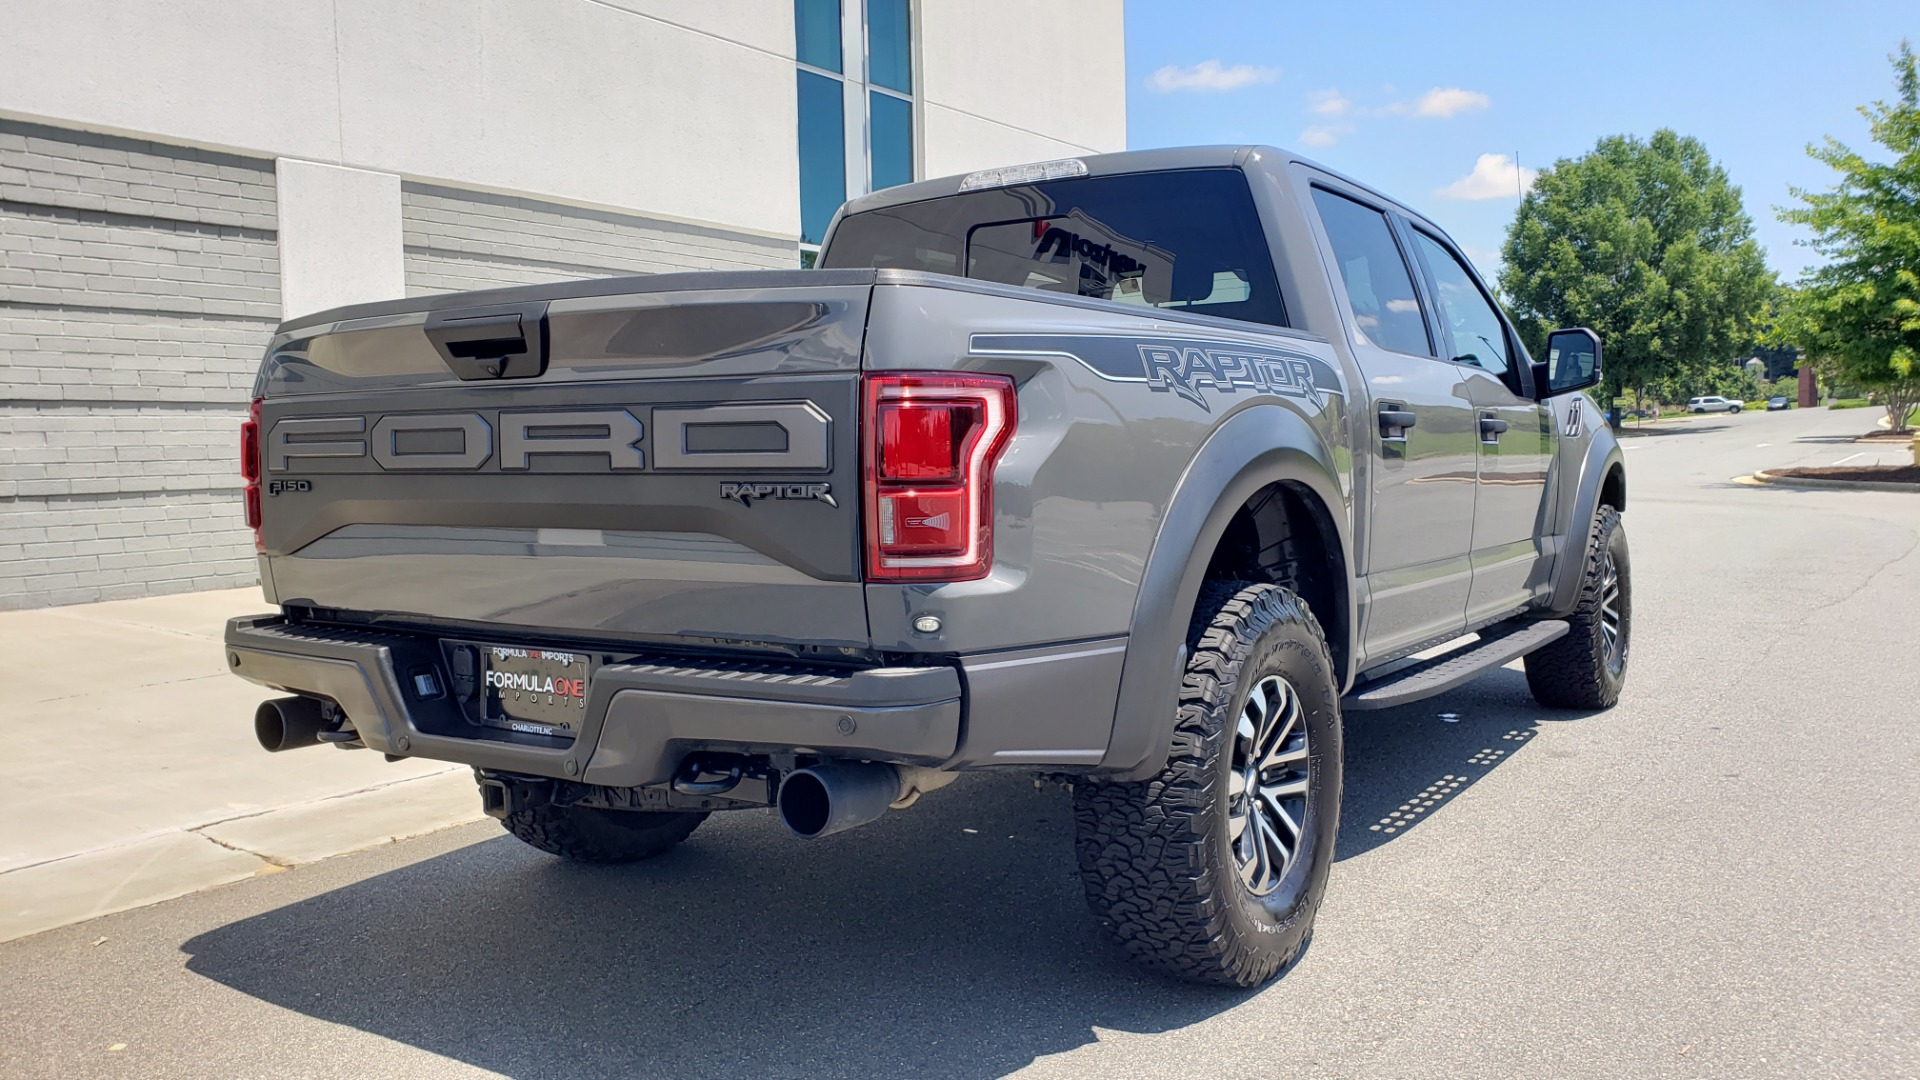 Used 2020 Ford F-150 RAPTOR 4X4 SUPERCREW / 3.5L ECOBOOST / 10-SPD AUTO / SUNROOF / REARVIEW for sale $82,500 at Formula Imports in Charlotte NC 28227 2